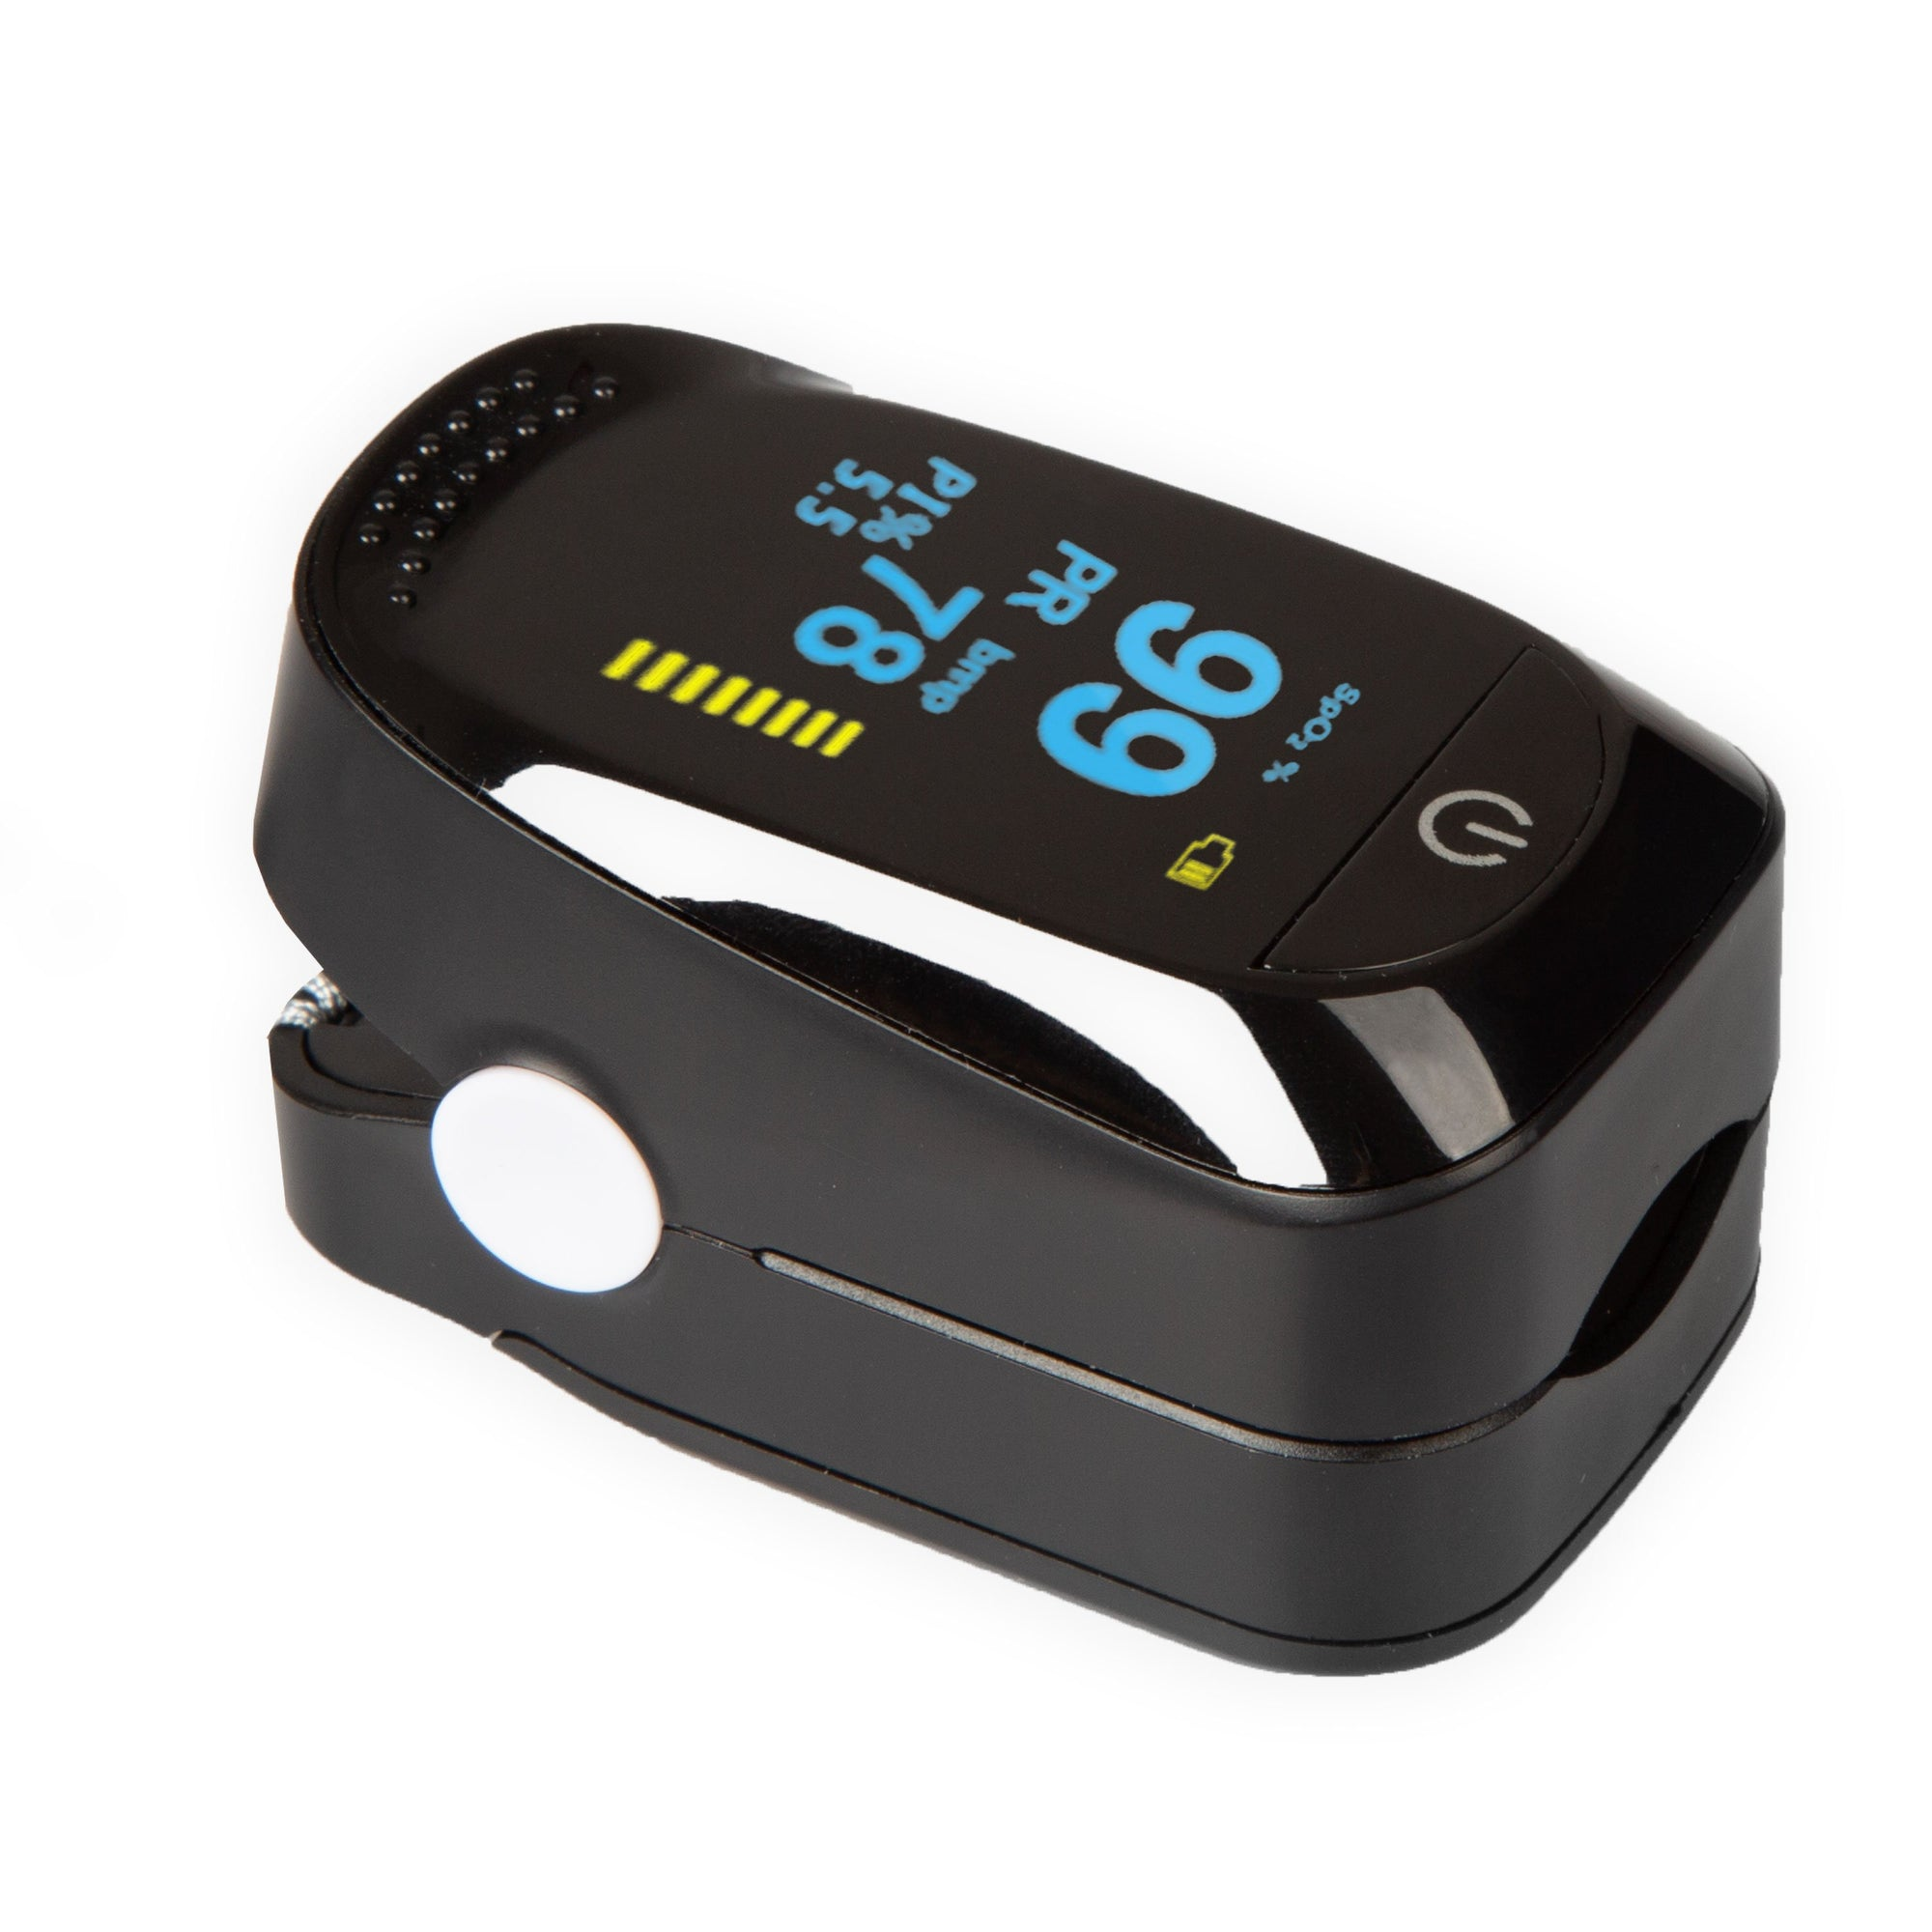 Health-Finger Pulse Oximeter